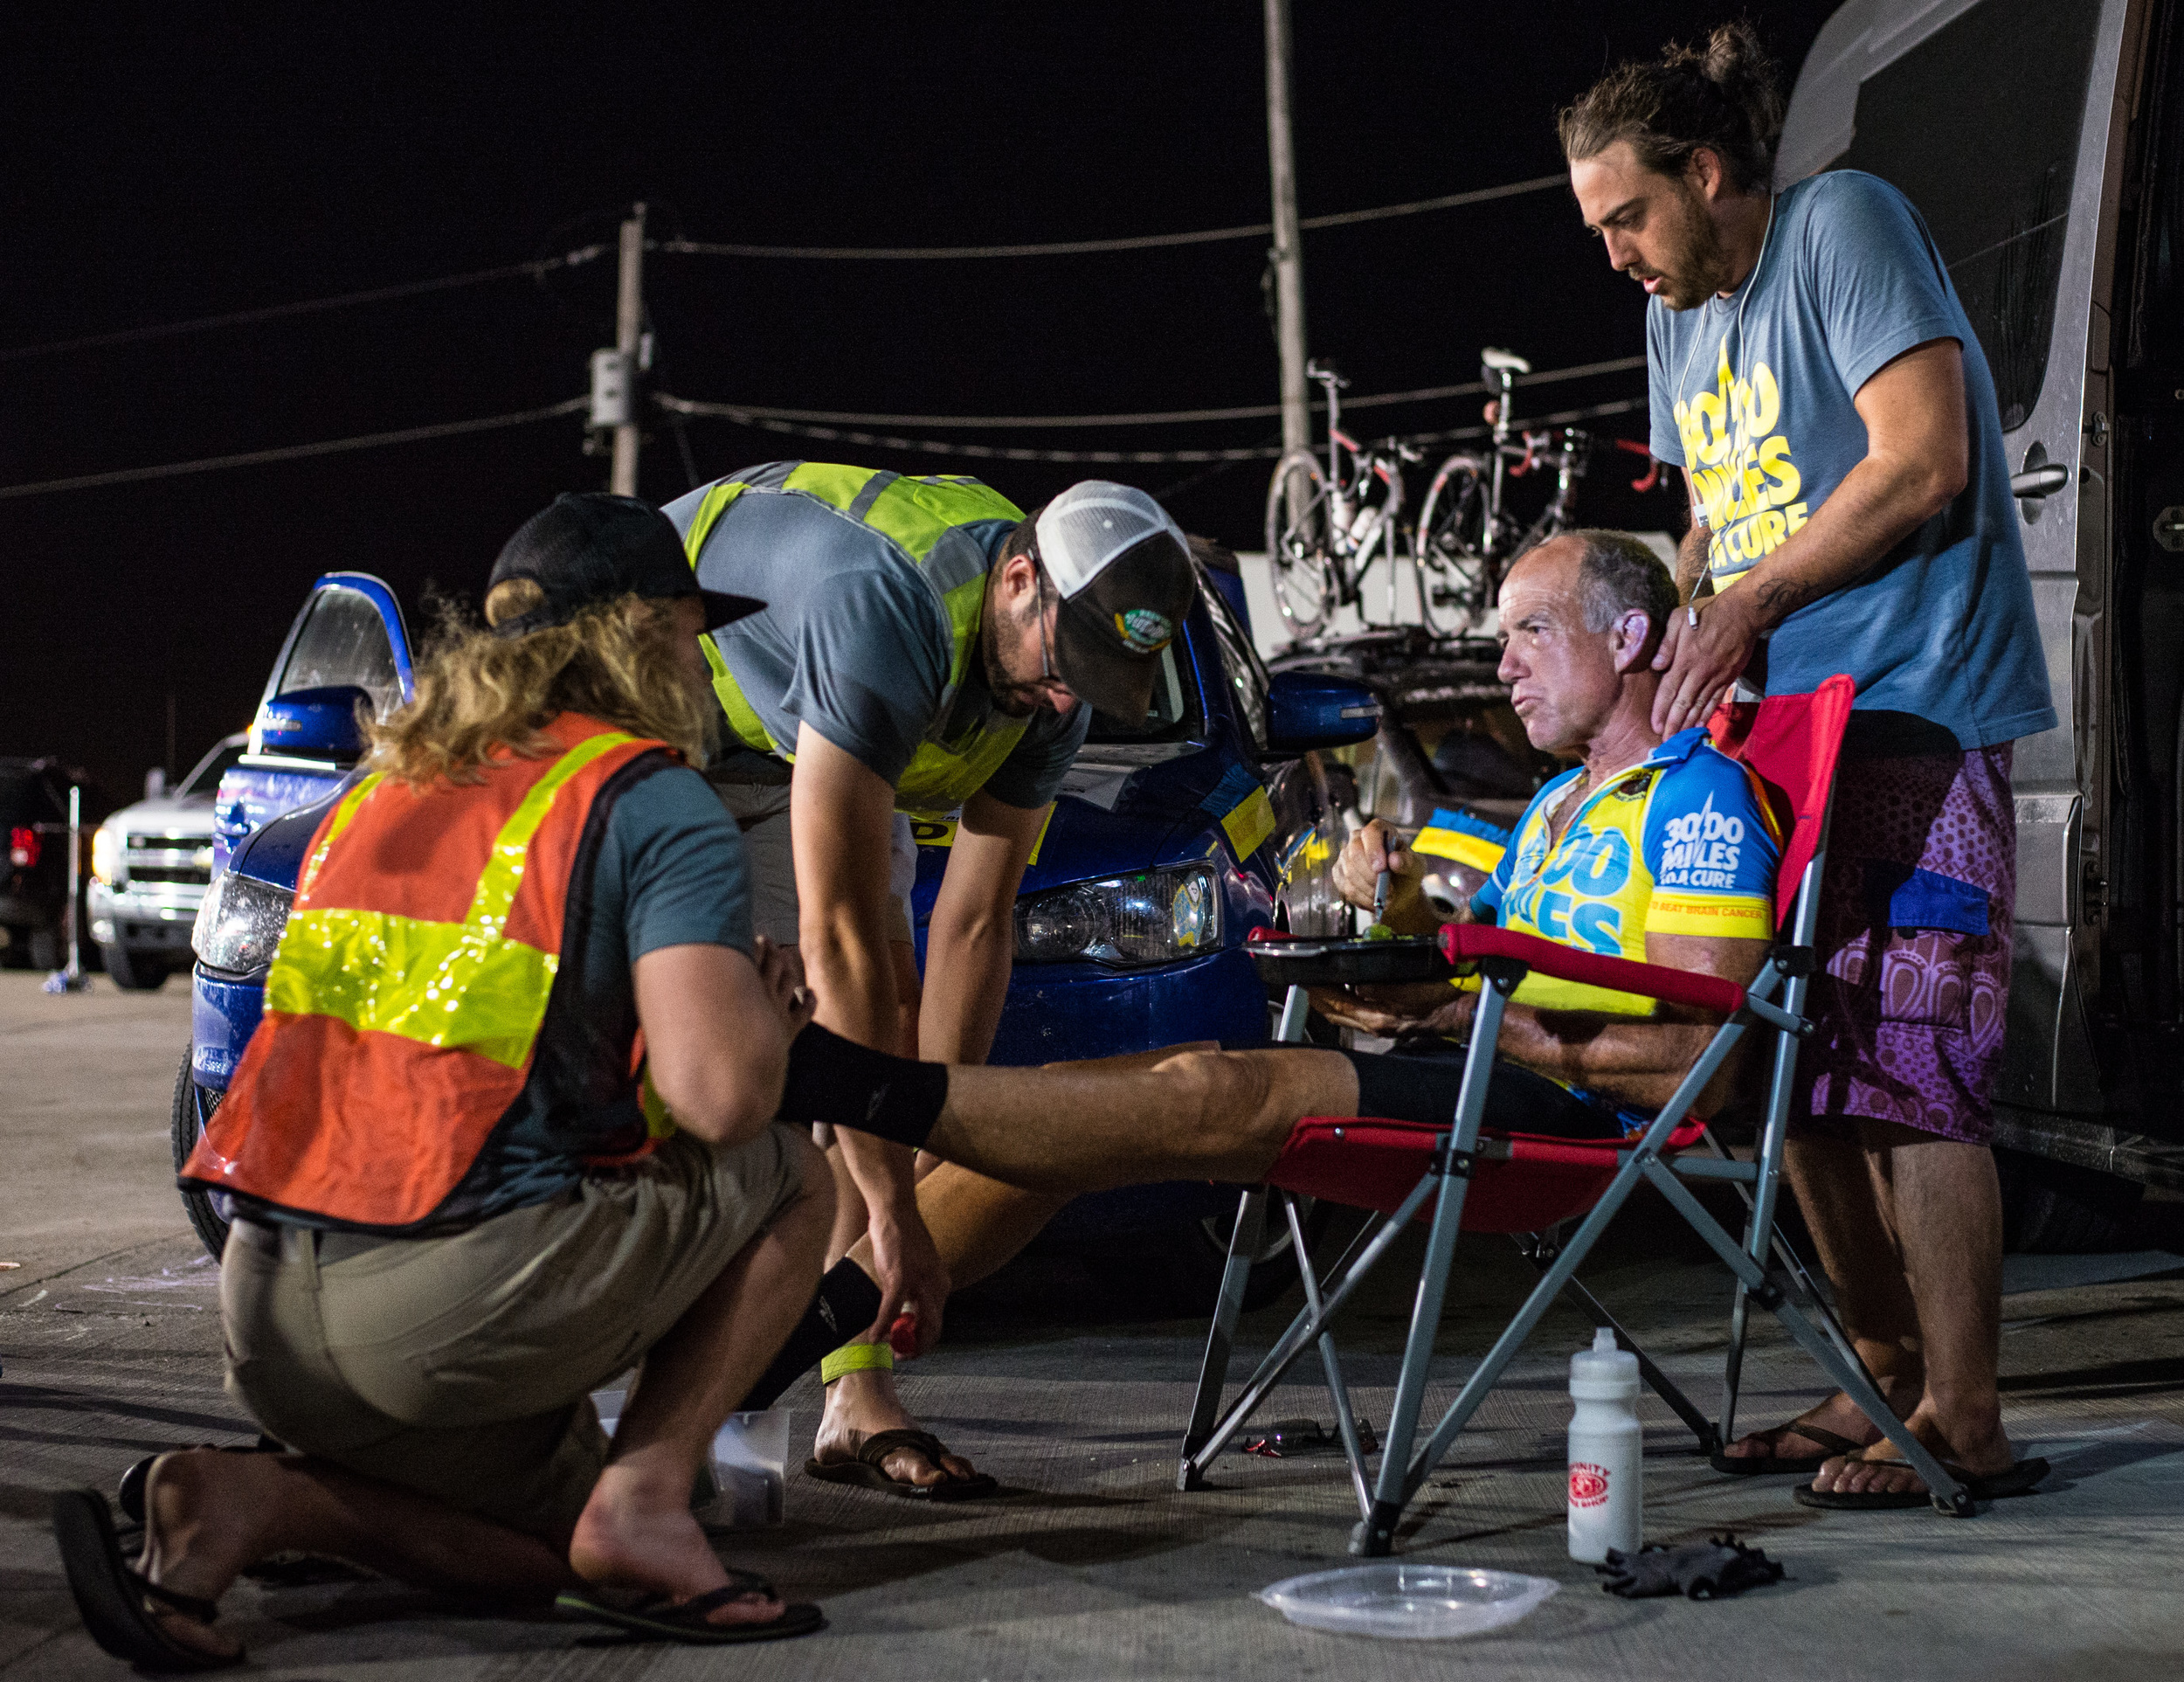 From left to right, crew members Ryan Jean, Tyler Jandreau, and Jesse Reeves massage Marshall as he eats to get him ready for a full night of riding. Marshall had little time to stop as he was trying to make it to the Mississippi River time cutoff. Photo taken on June 22nd, 2016.